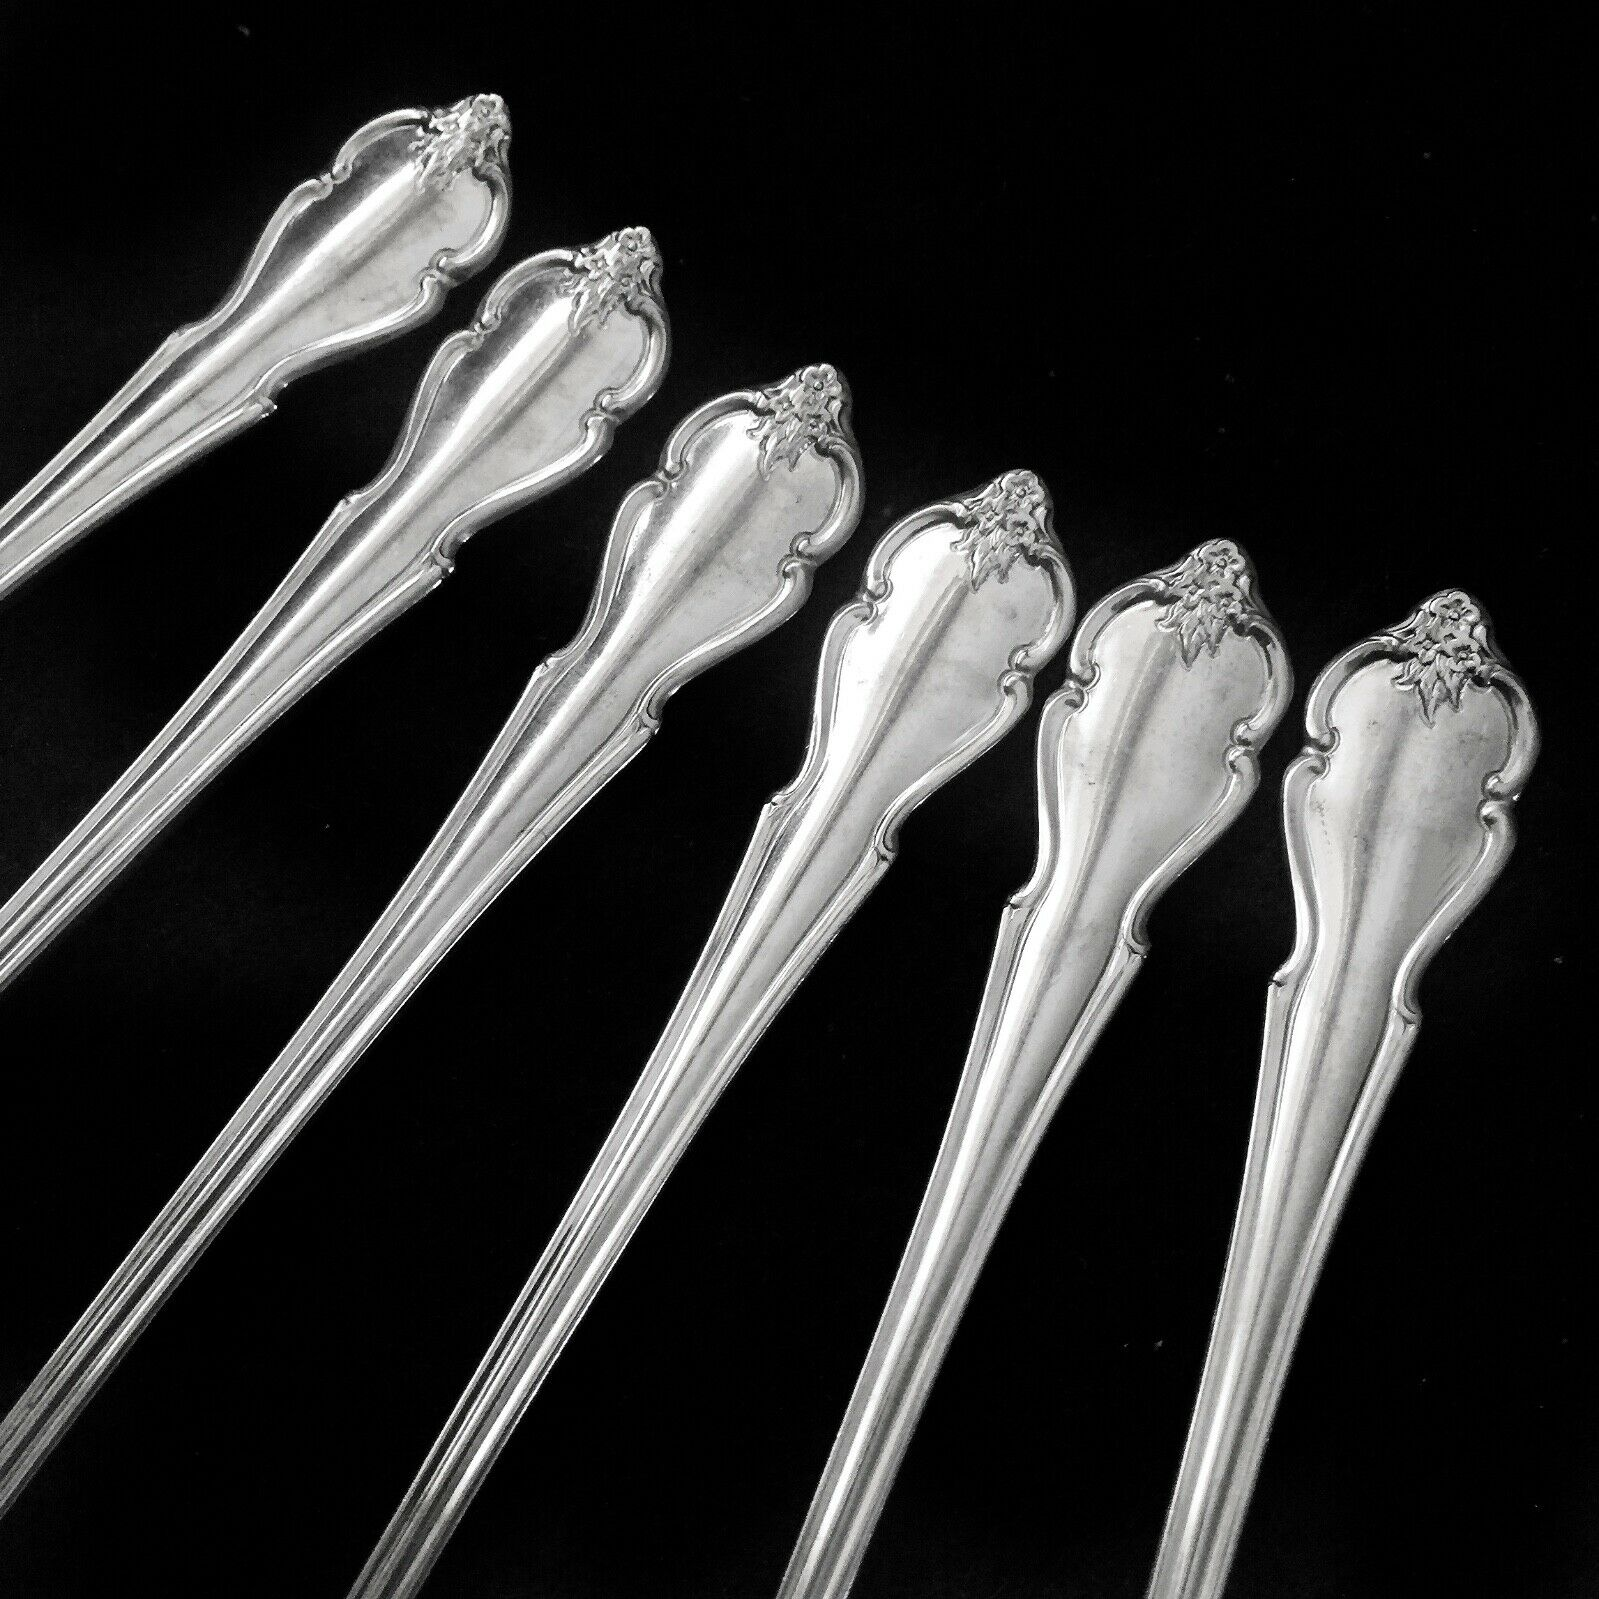 International International International Deluxe - AMERICAN Rosa 1967 Stainless - 6 ICED TEA Spoons - HTF 45976a